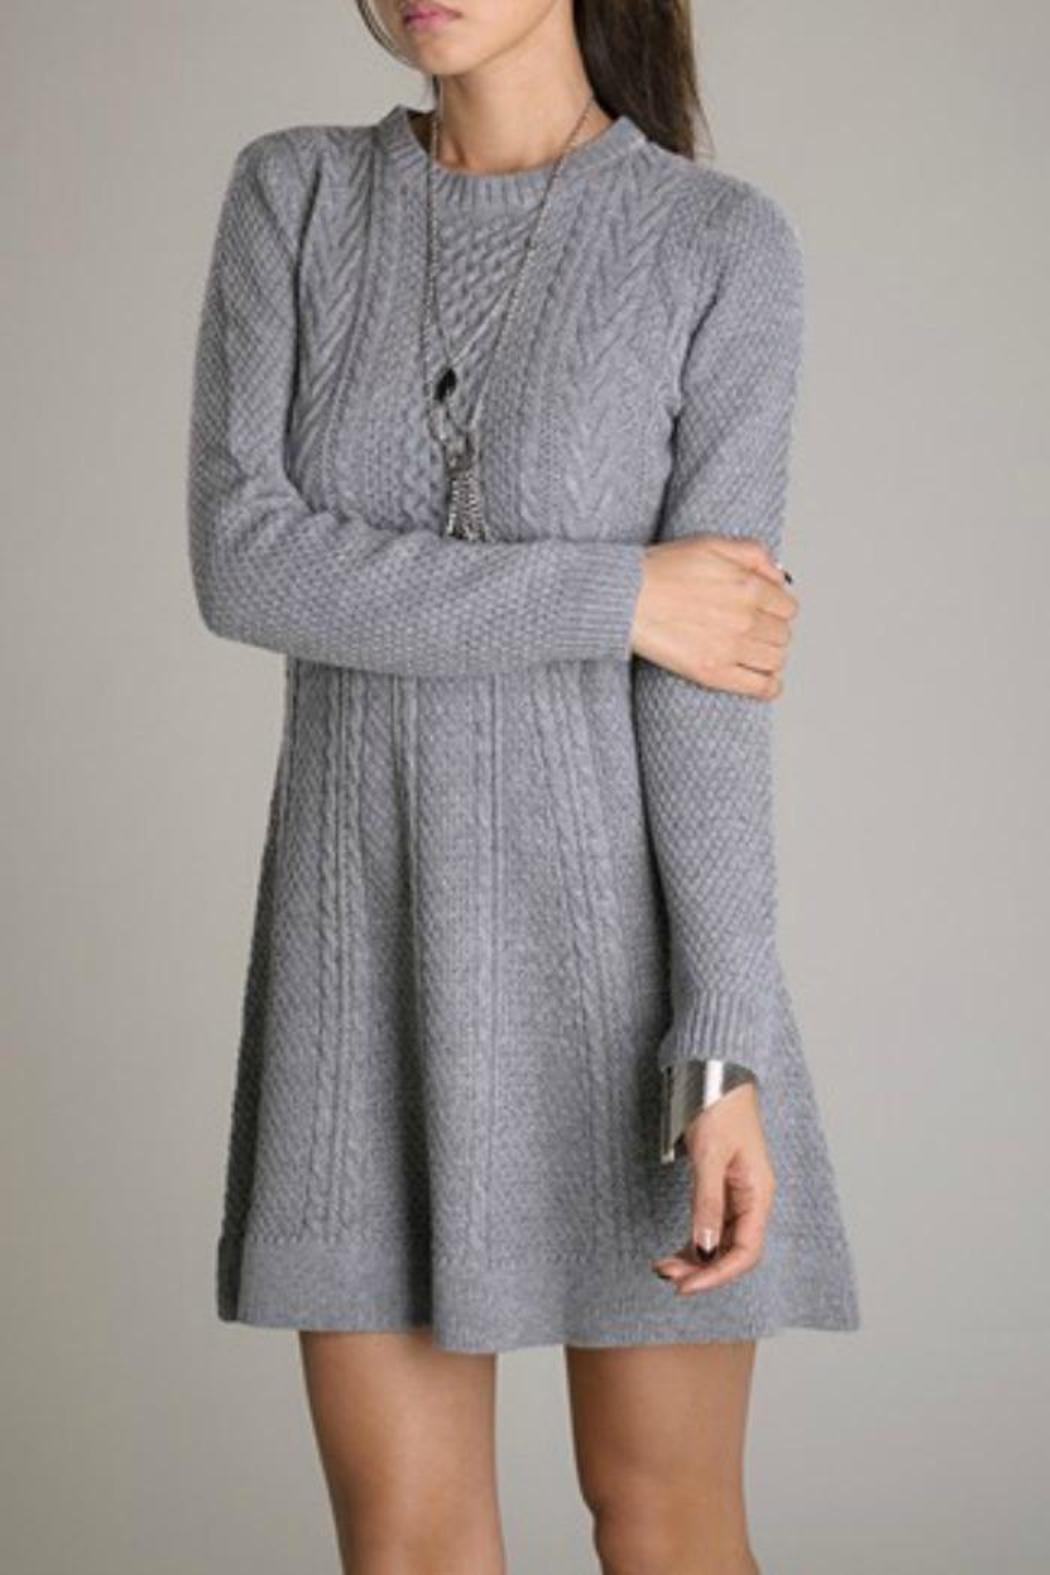 Eunishop Gray Sweater Dress - Main Image